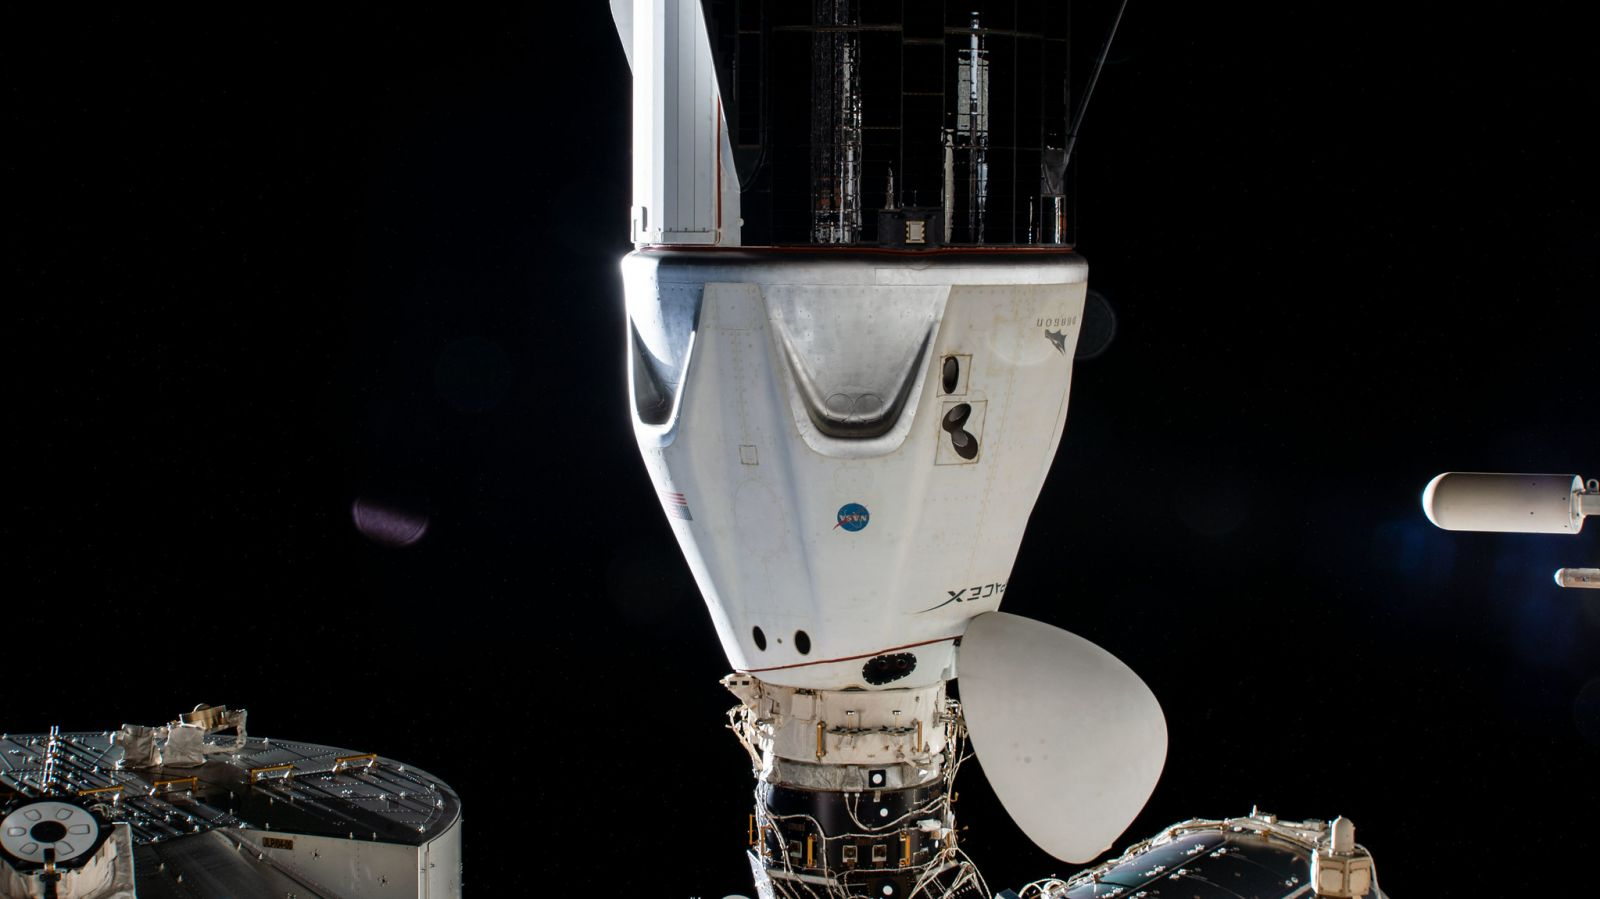 Crew Dragon Resilience docked at the space-facing port of the Harmony module. Credit: NASA